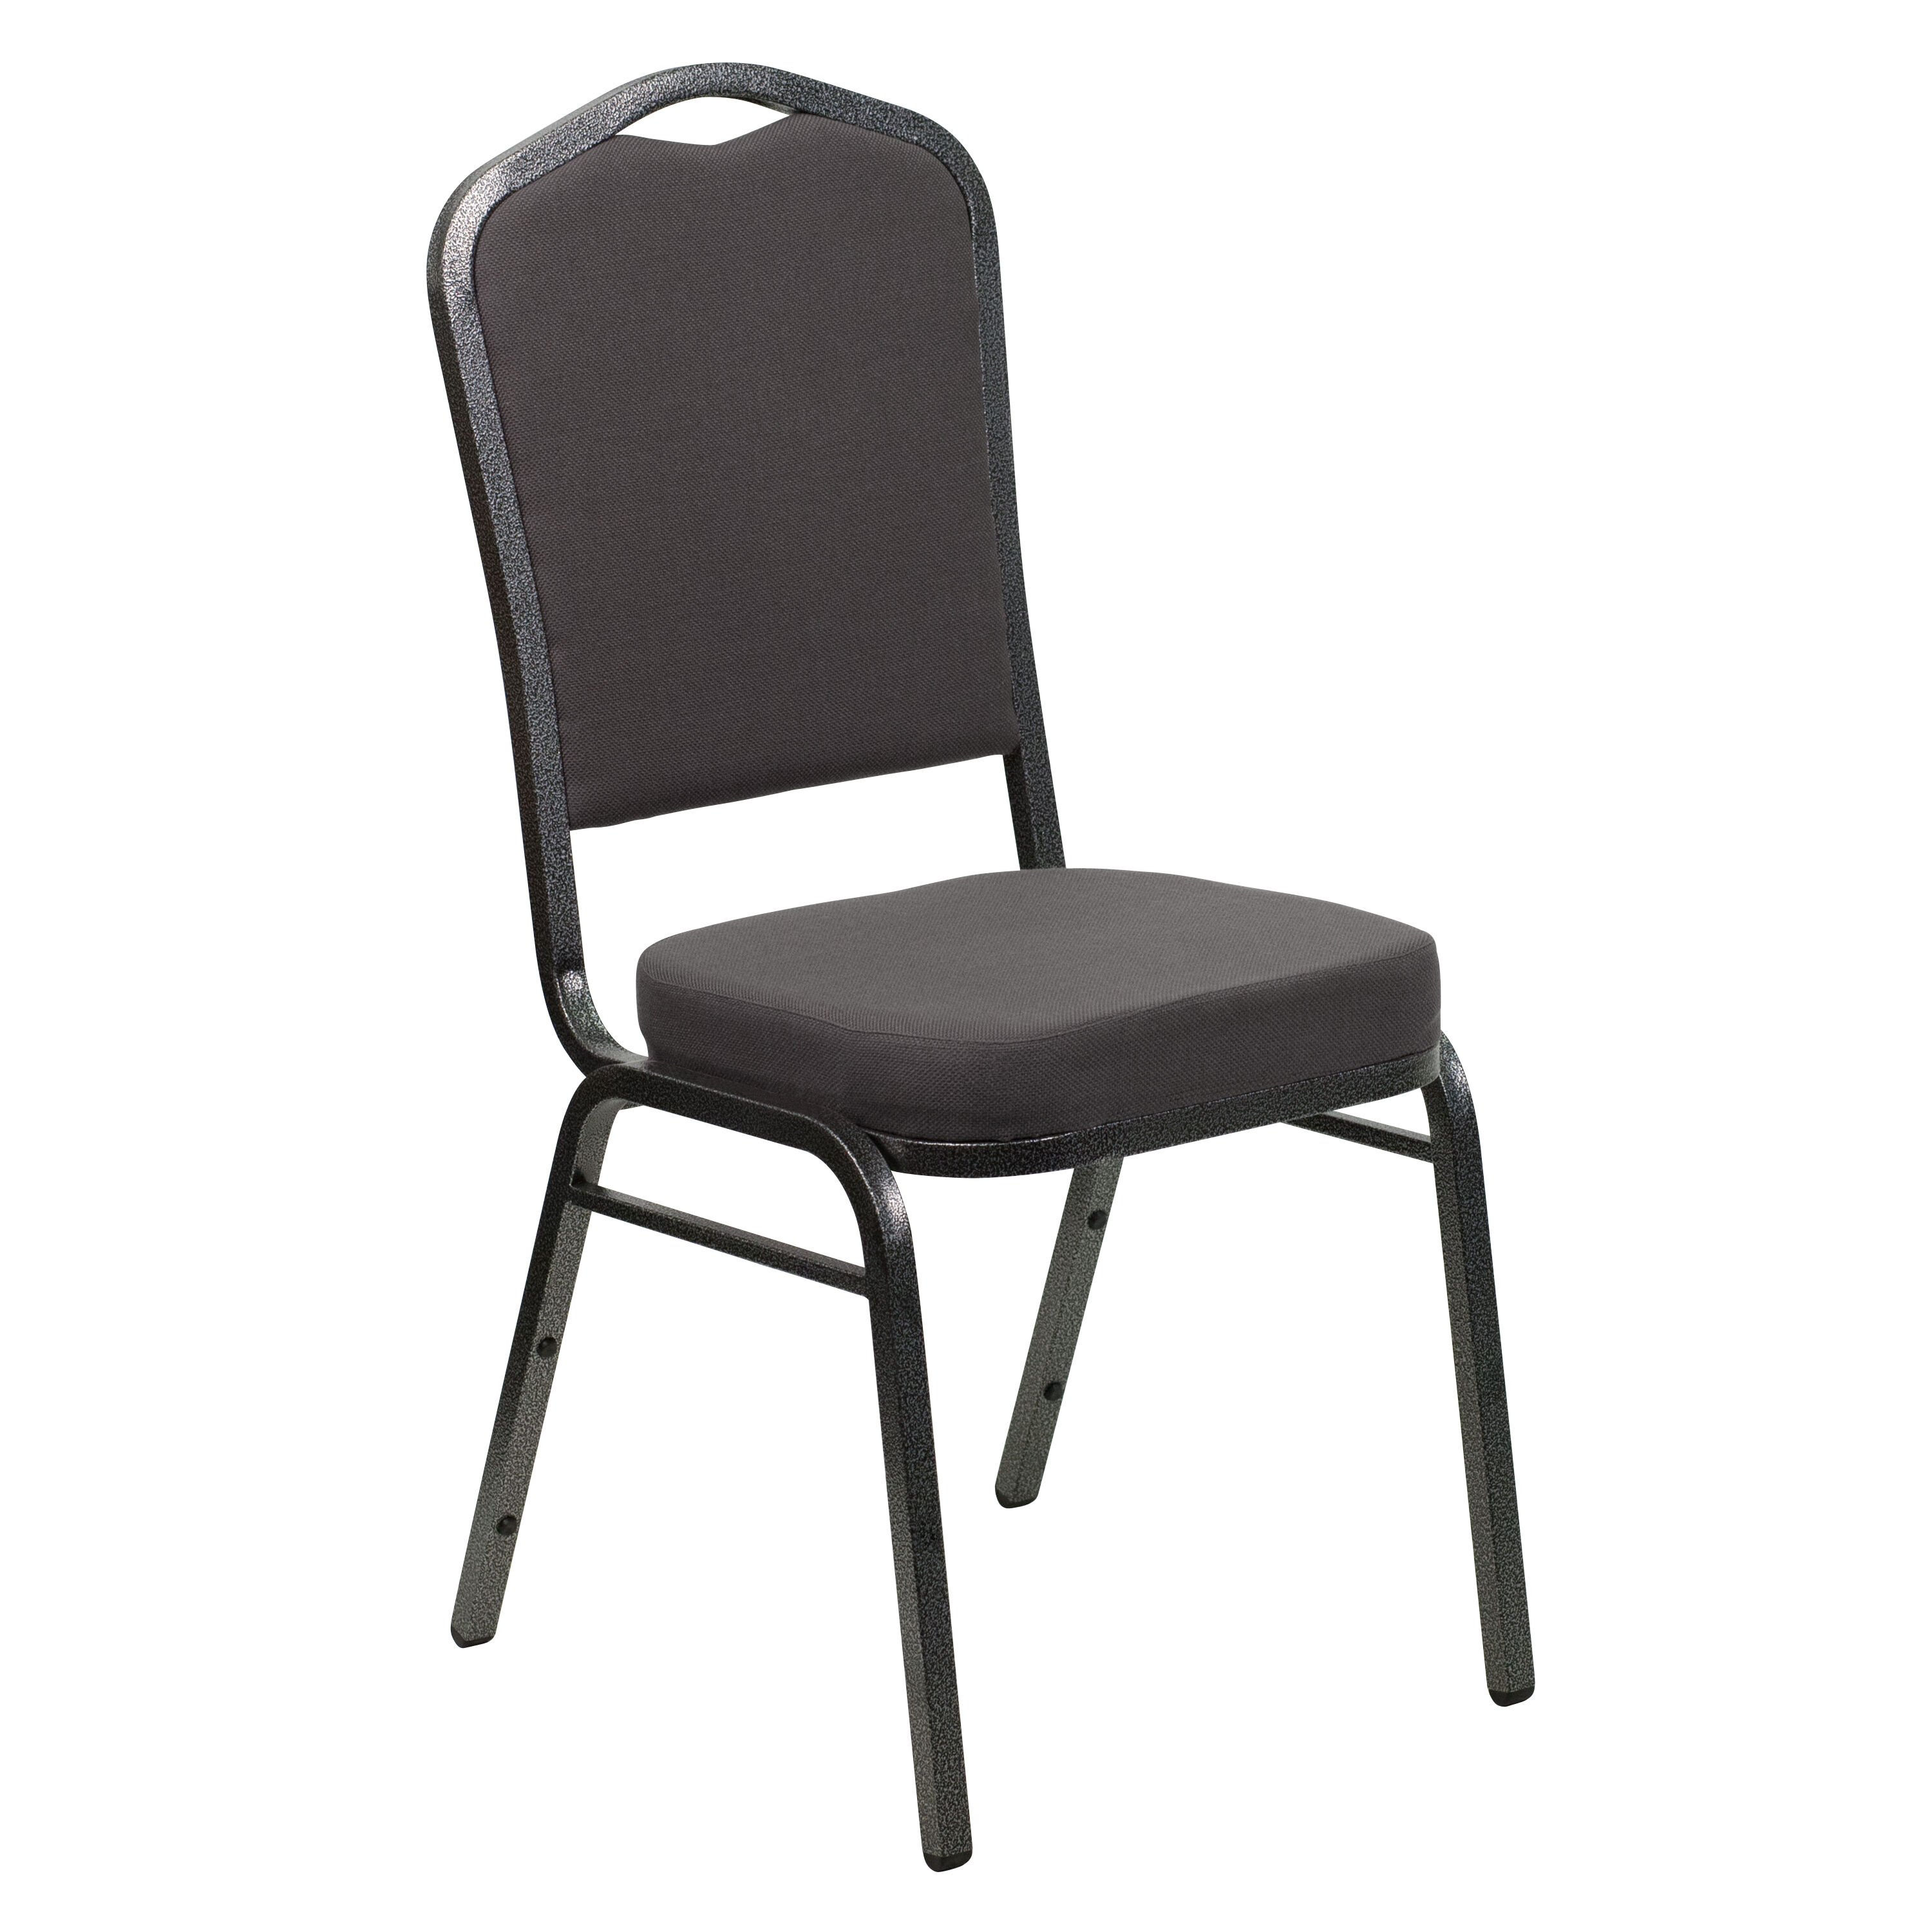 Flash Furniture HERCULES Series Crown Back Stacking Banquet Chair In Gray  Fabric   Silver Vein Frame FD C01 SILVERVEIN GY GG | StackChairs4Less.com